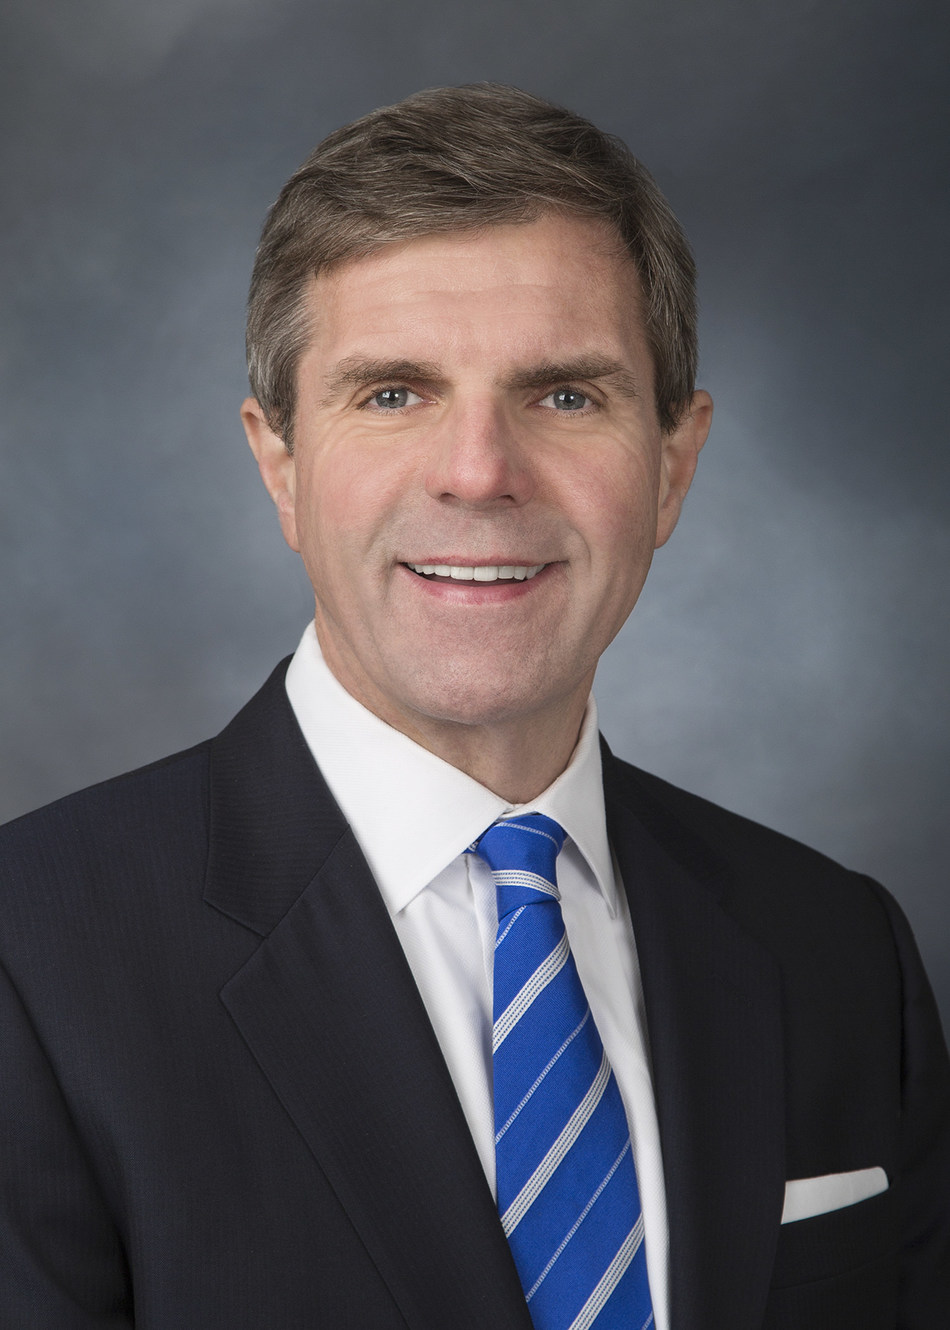 Kevin F. Kelly, a leading figure in regulatory law and advocacy, including federal budget and appropriations matters, has joined national law firm Clark Hill's Washington DC office.